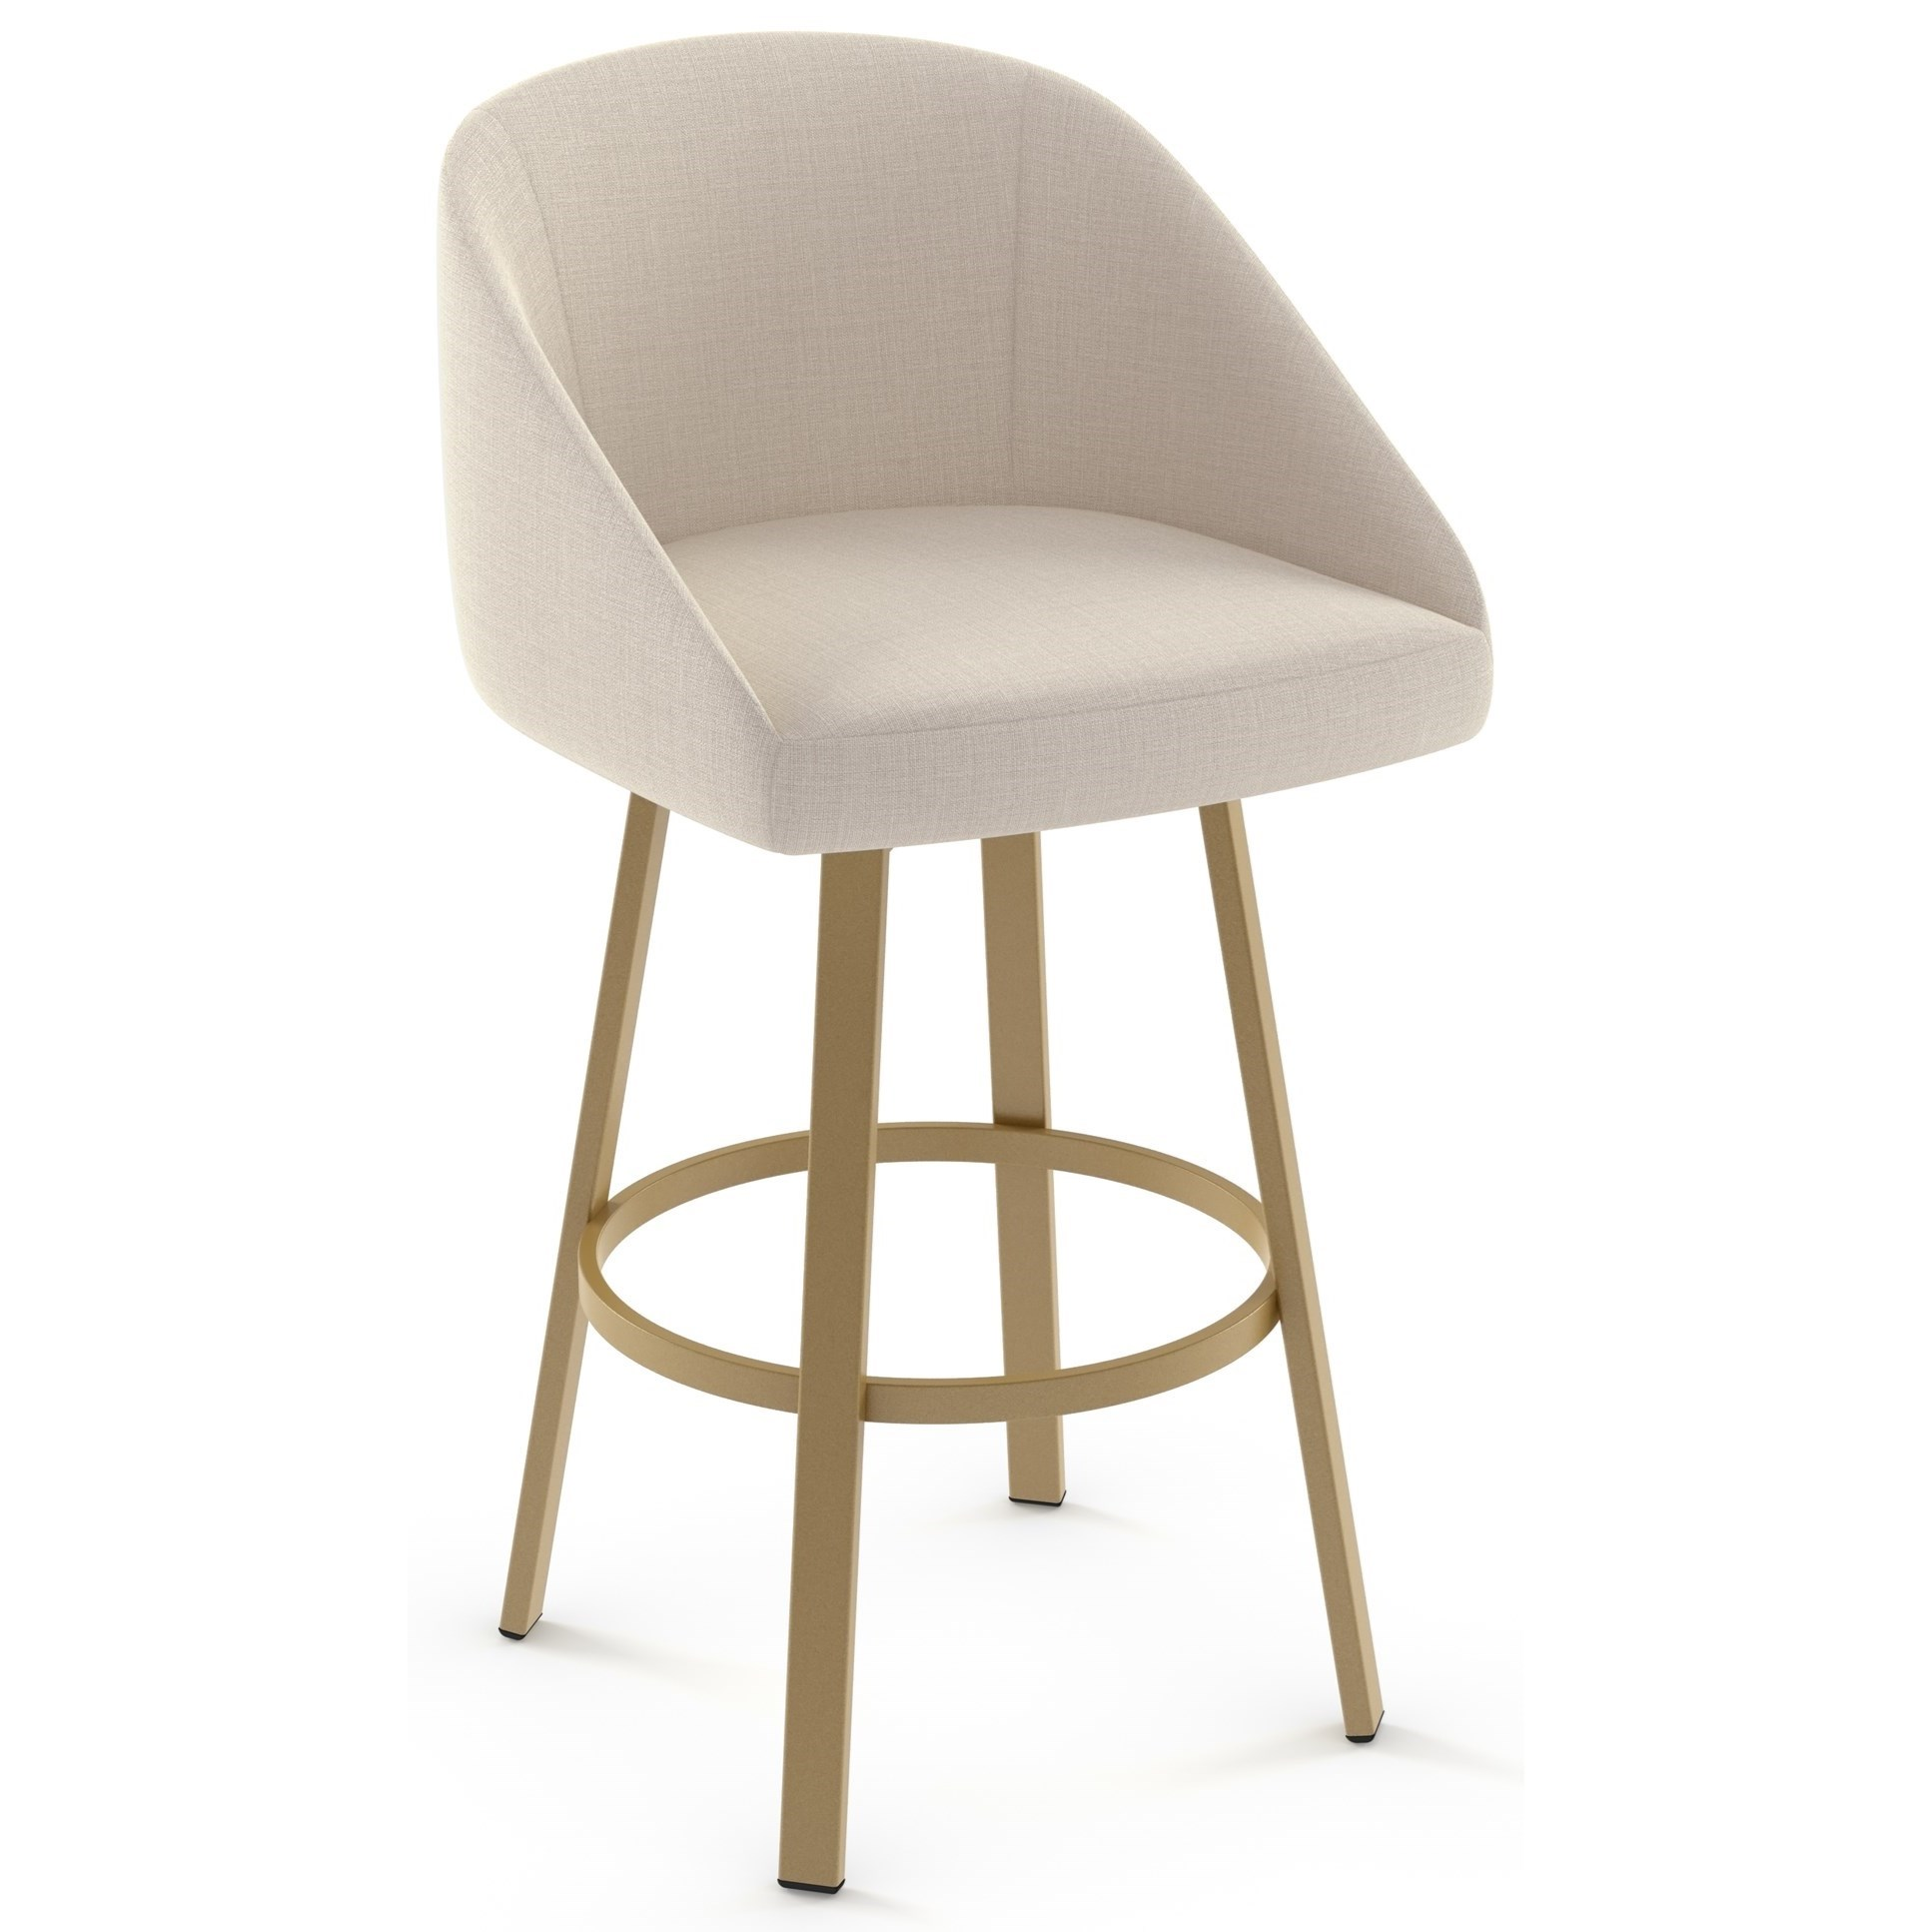 "Boudoir 30"" Wembley Swivel Bar Stool by Amisco at Dinette Depot"